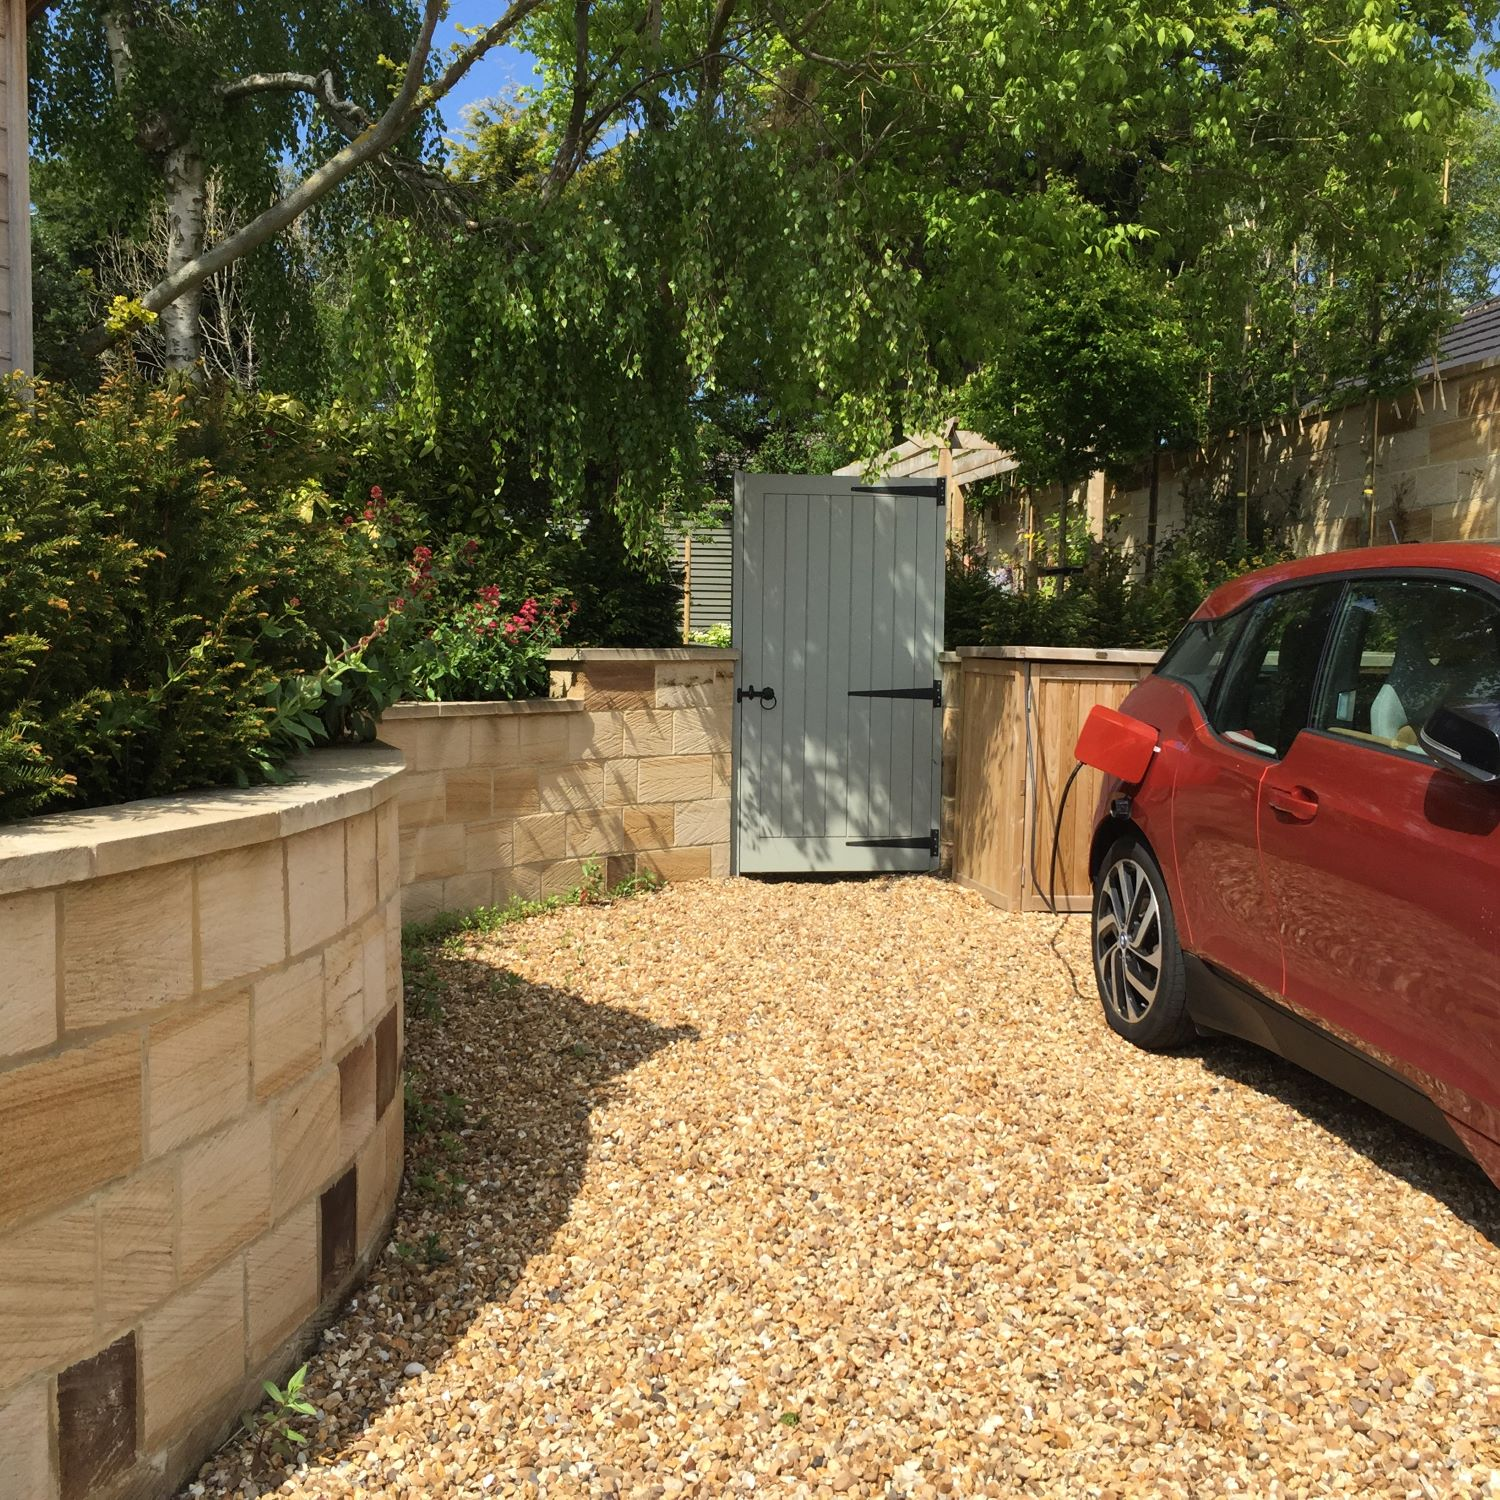 The timber bin stores and car charging point